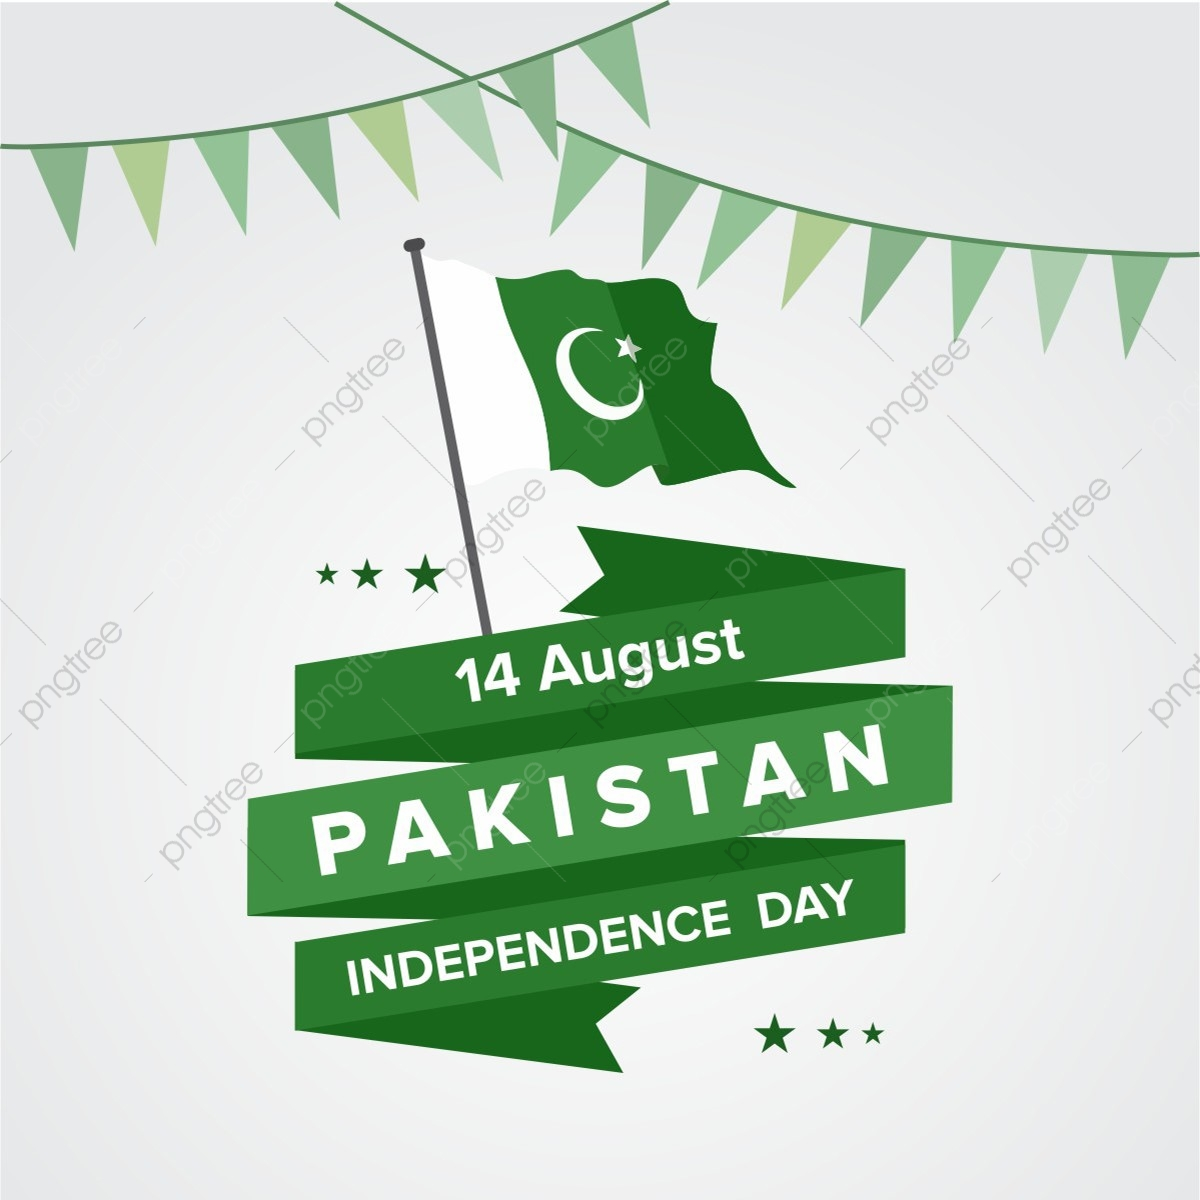 Happy Independence Day 14 August Pakistan Greeting Card Pakistan August 14 Png And Vector With Transparent Background For Free Download